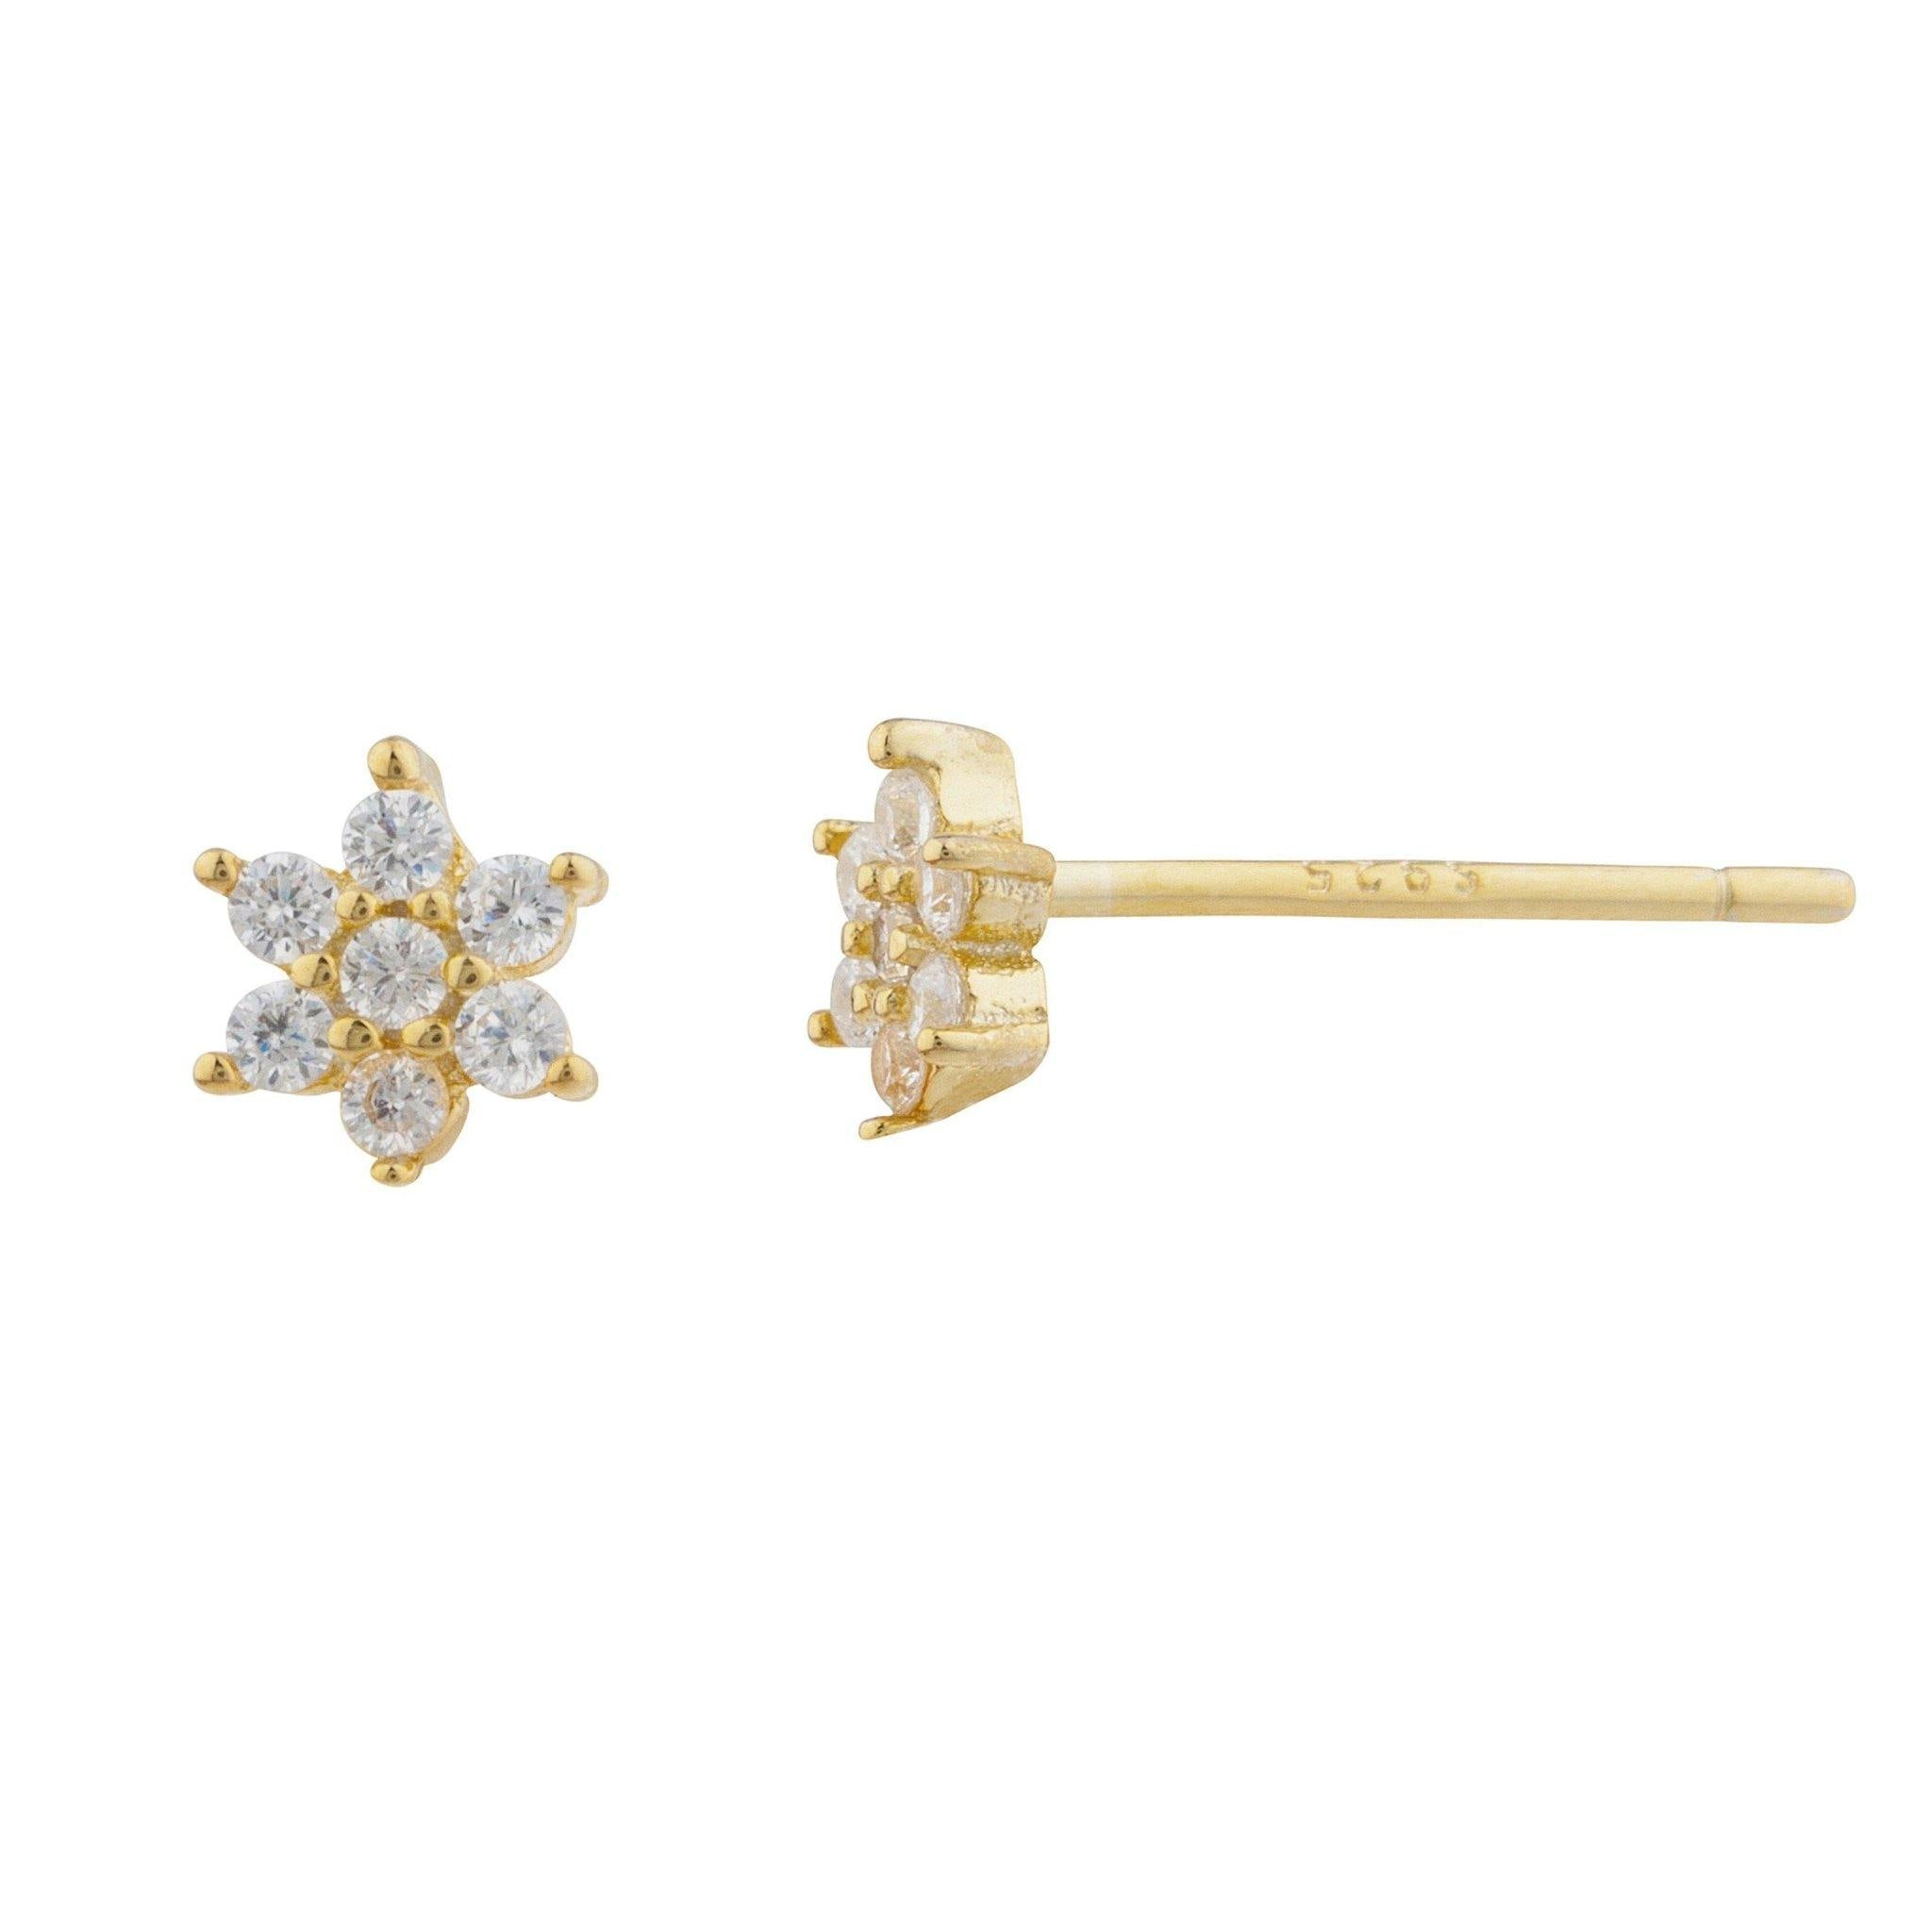 Daisy Pave Stud Earring - Taylor Adorn